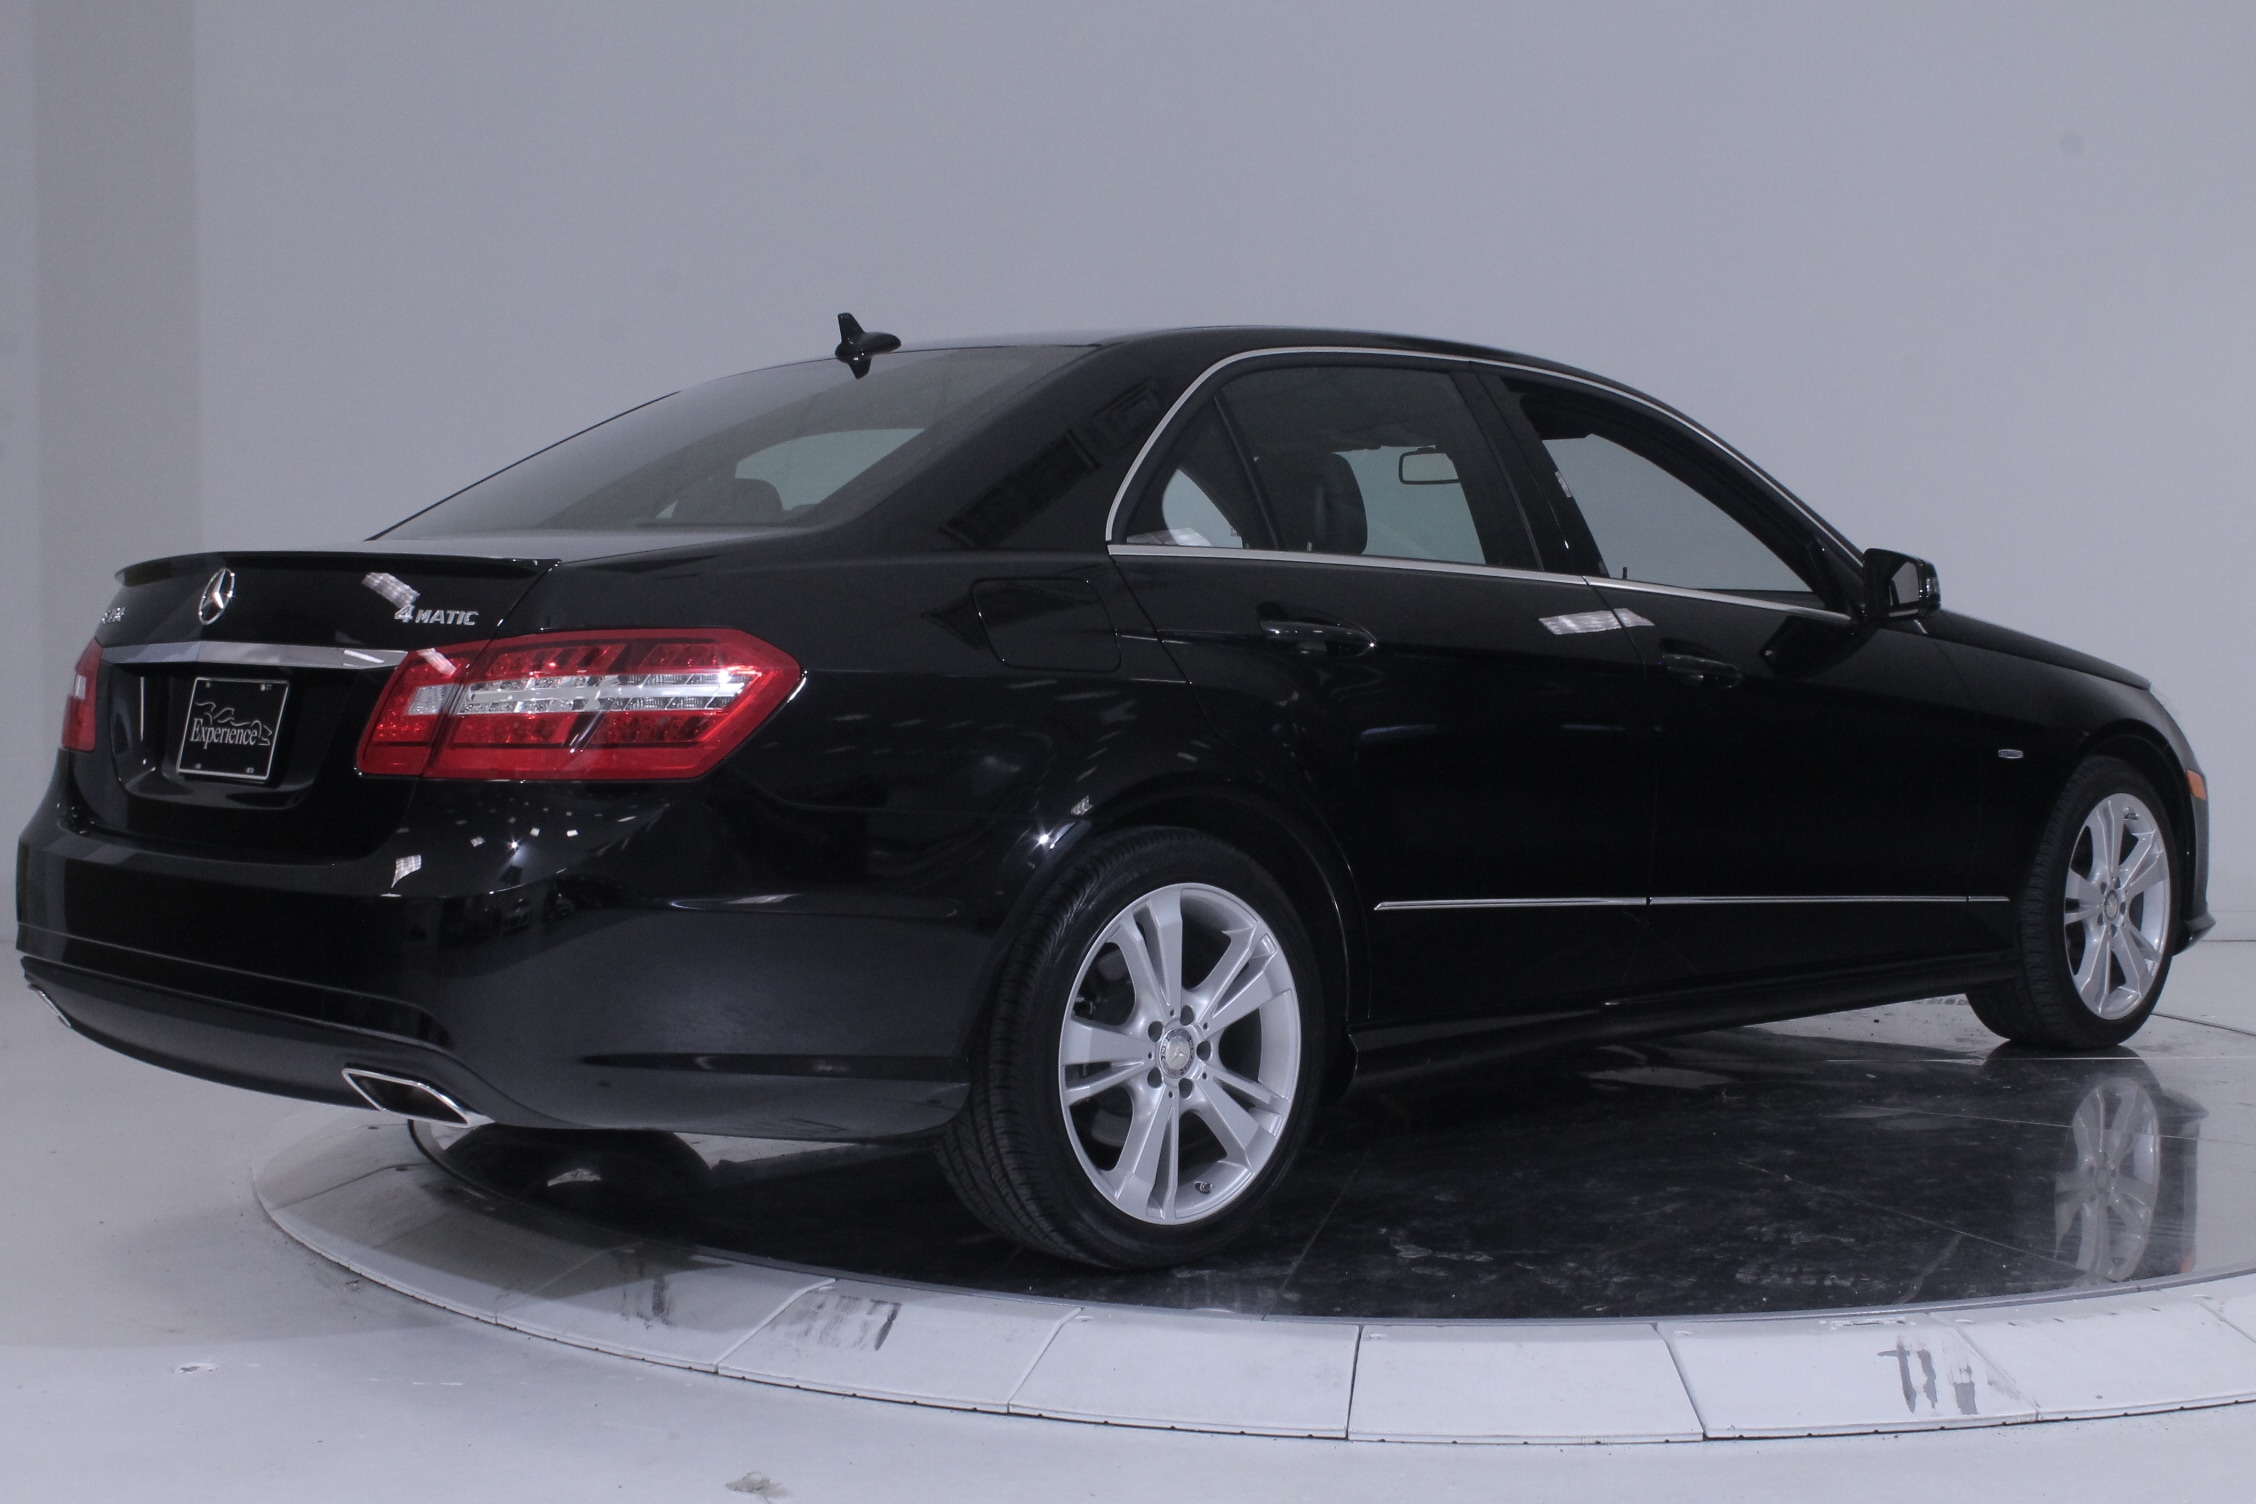 Used 2012 mercedes benz e350 4matic in black for sale for Mercedes benz e350 4matic 2012